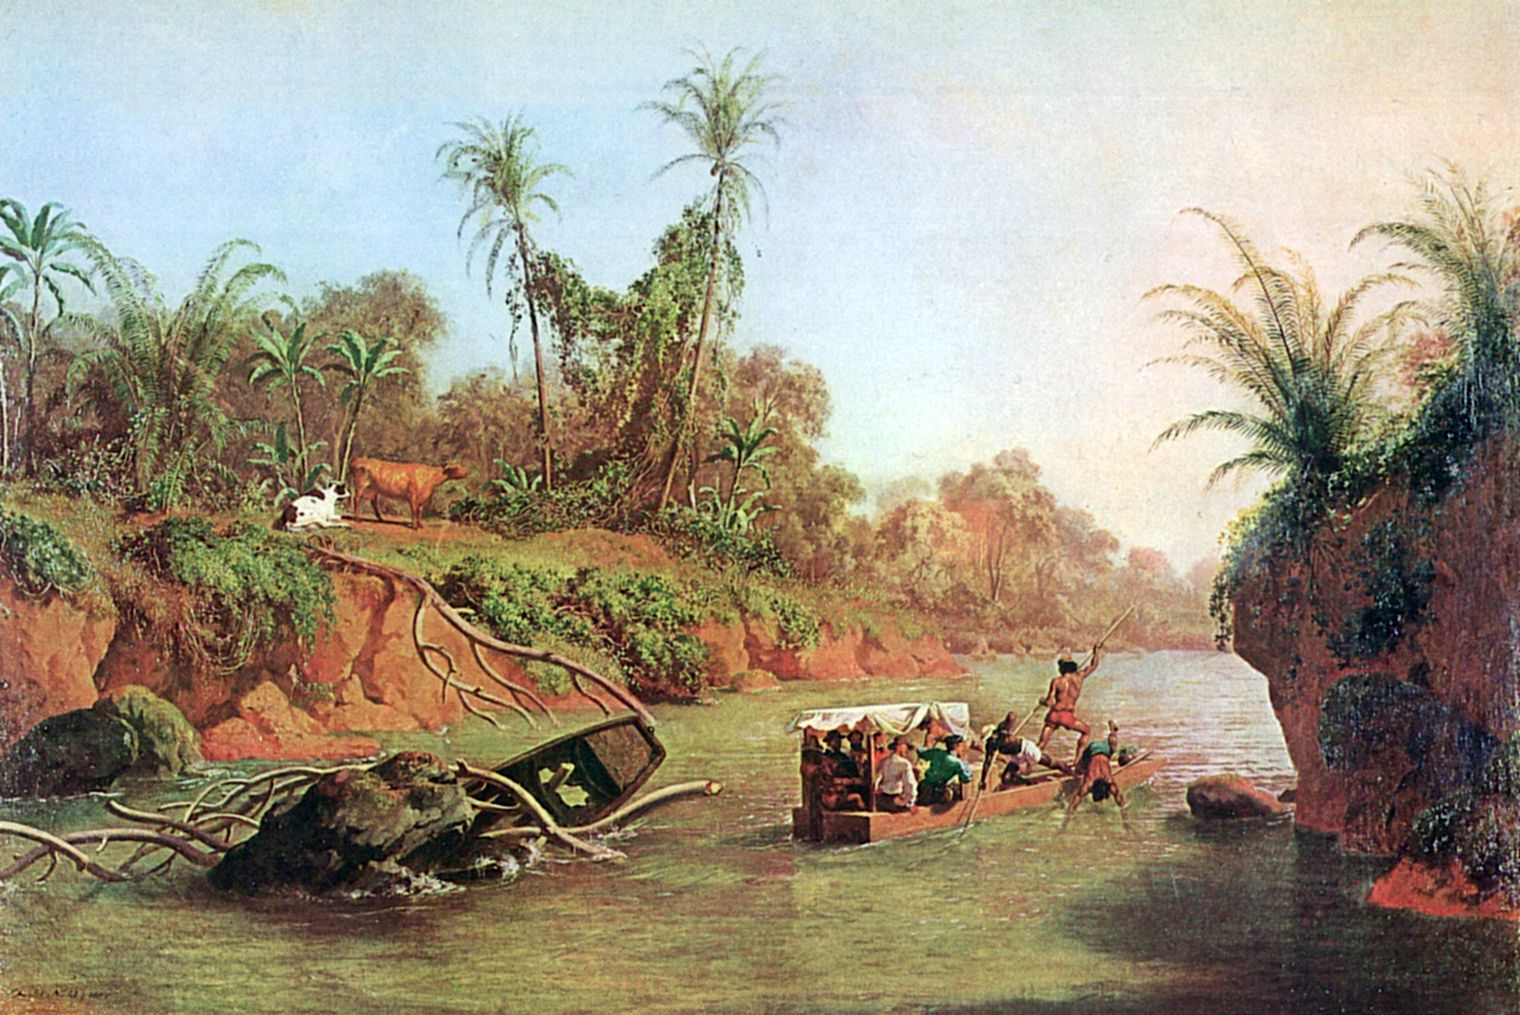 Incident on the Chagres River